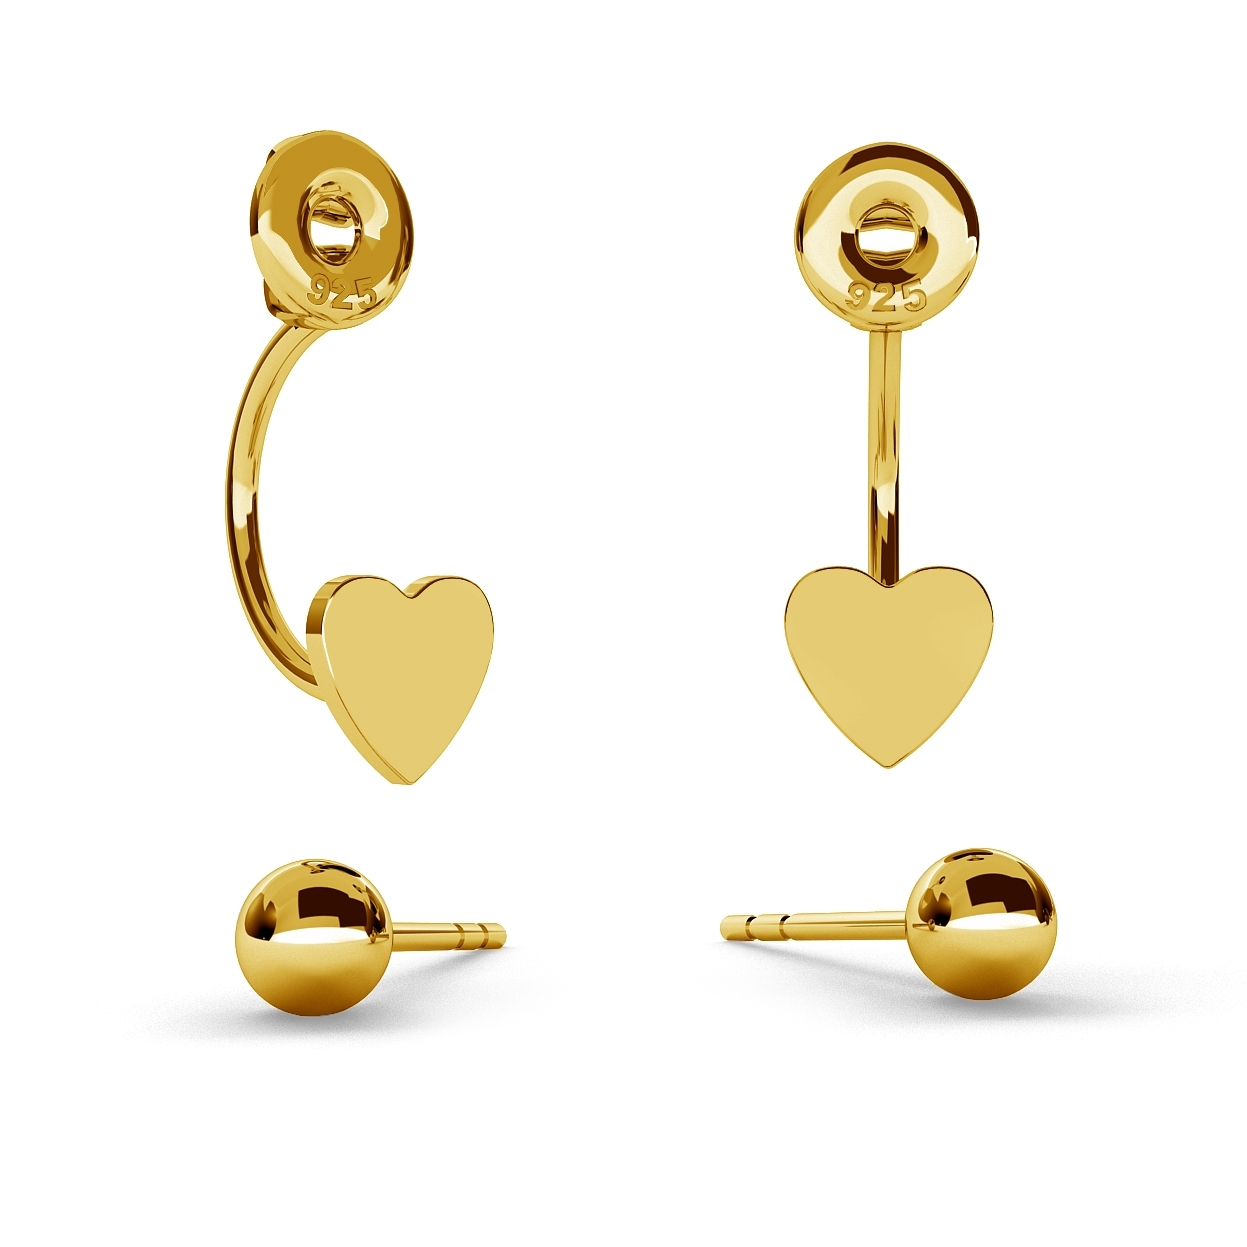 SWING EARRINGS BALL & HEART, STERLING SILVER (925) RHODIUM OR GOLD PLATED